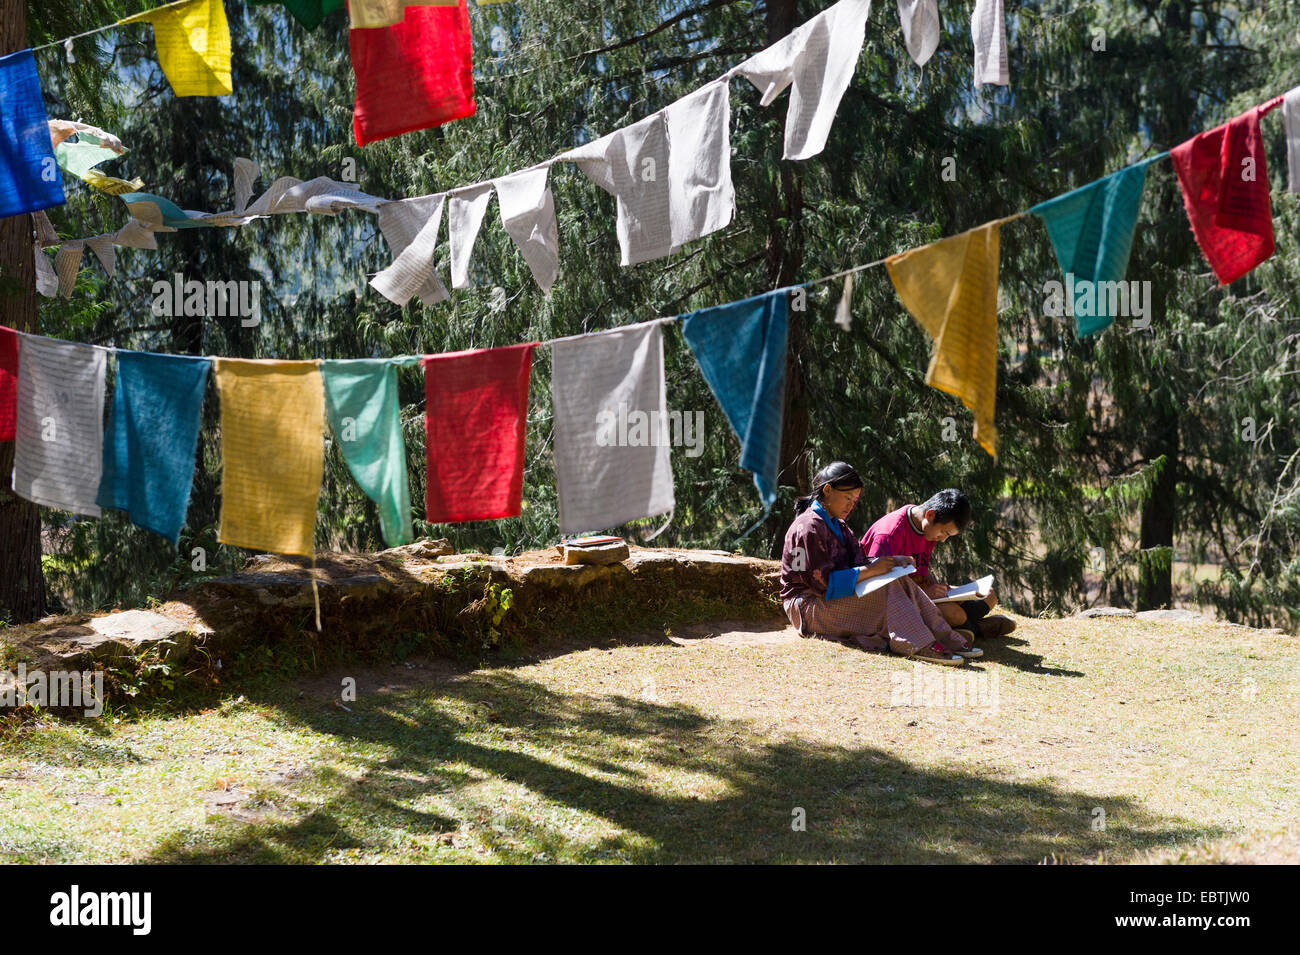 Two Students Studying under Prayer or wind flags, Bhutan - Stock Image